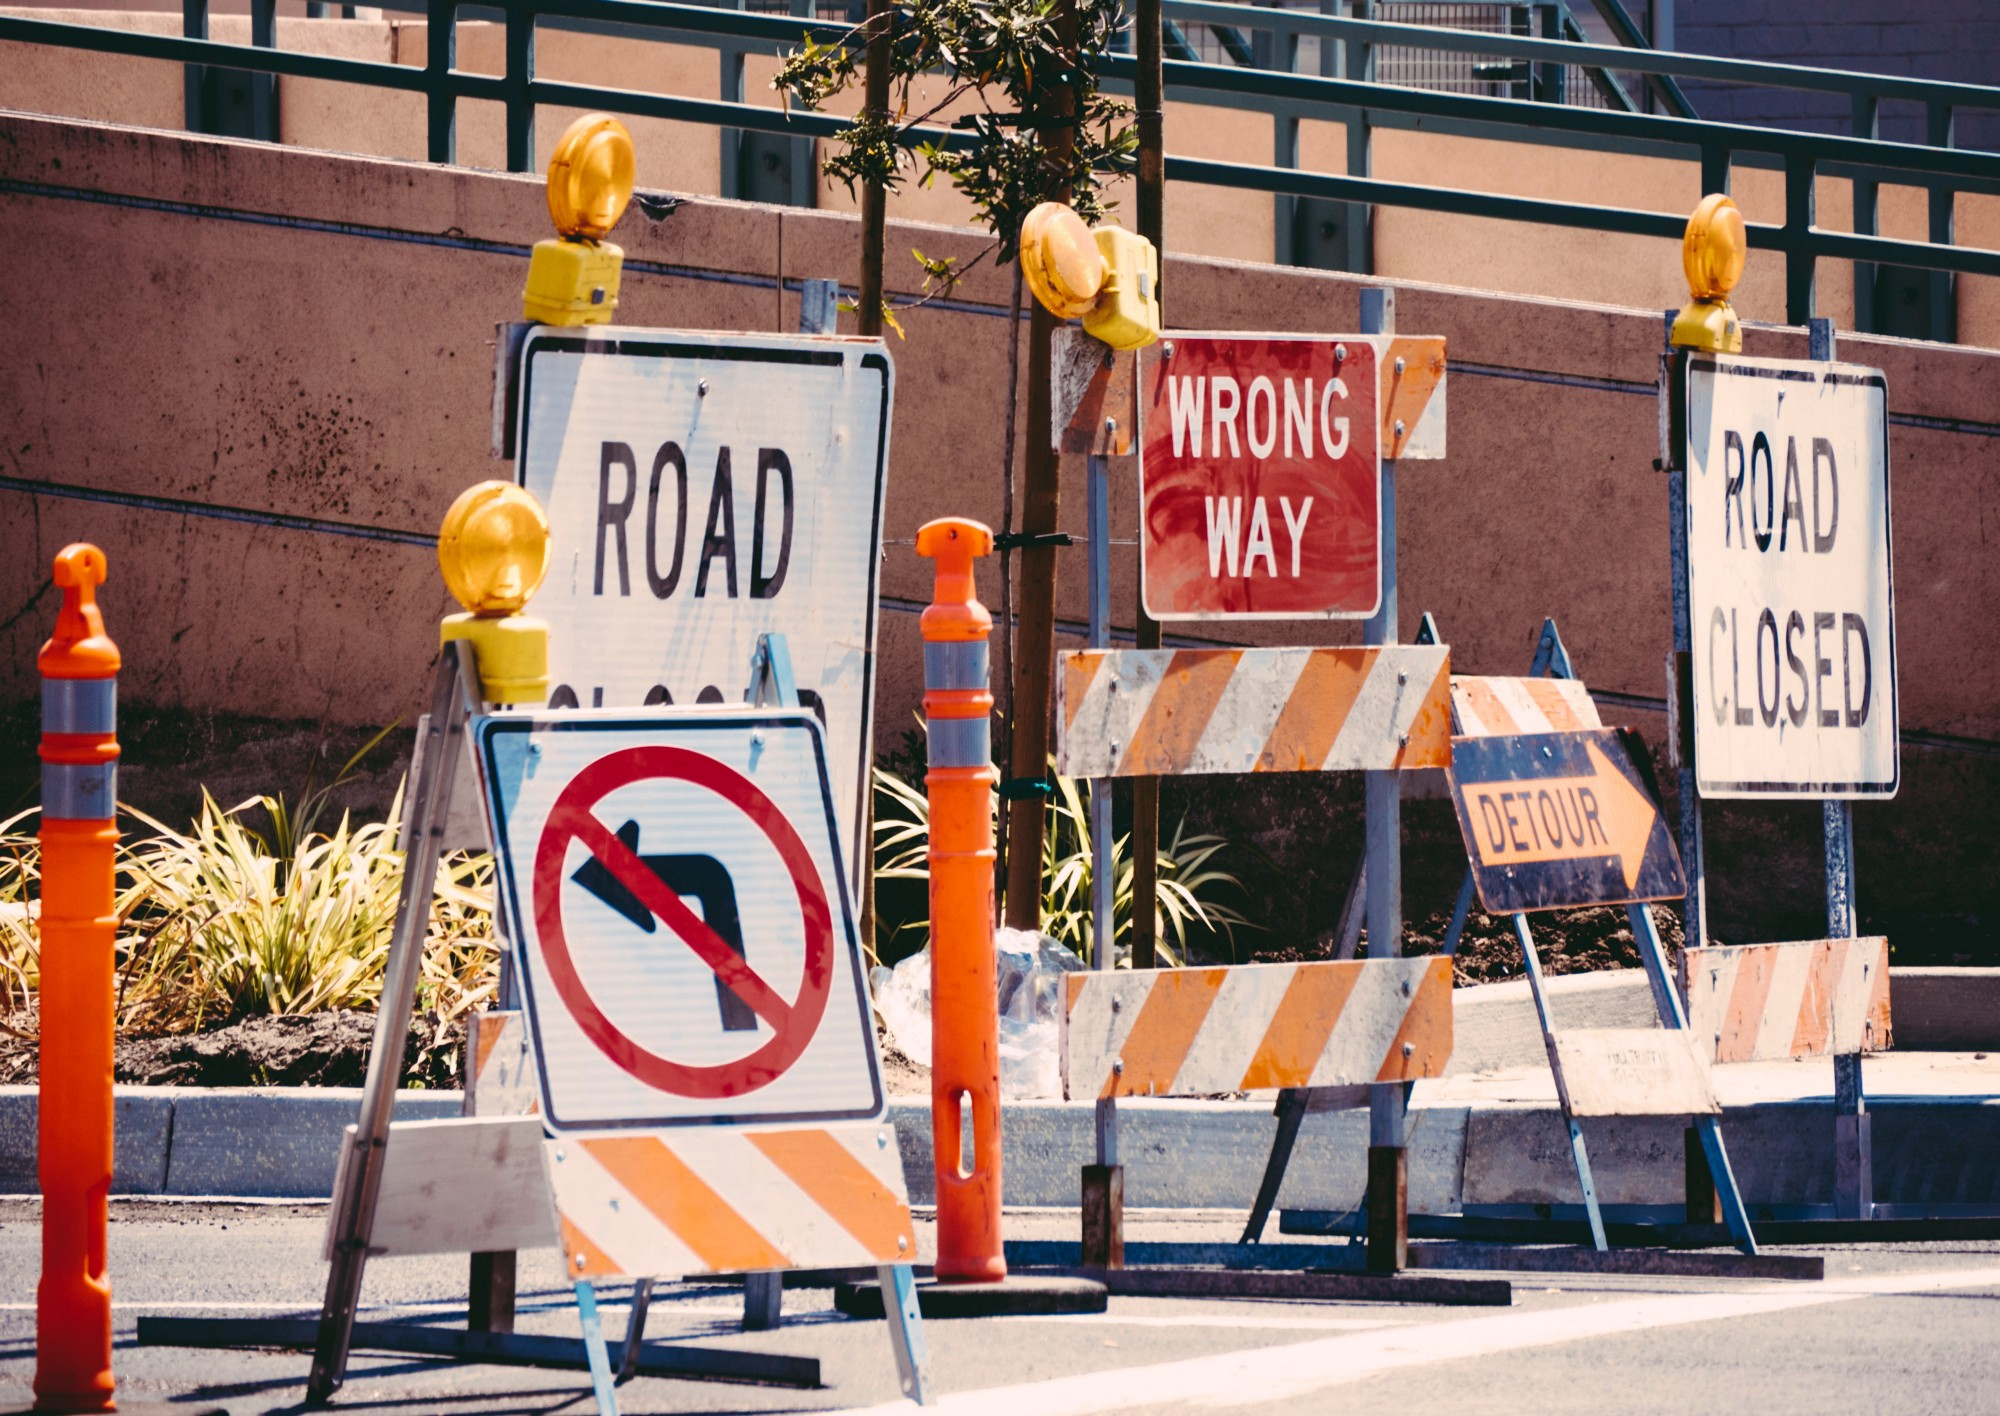 """A collection of signs on a street which read """"Road Closed, Wrong Way, No Left Turn, and Detour."""""""